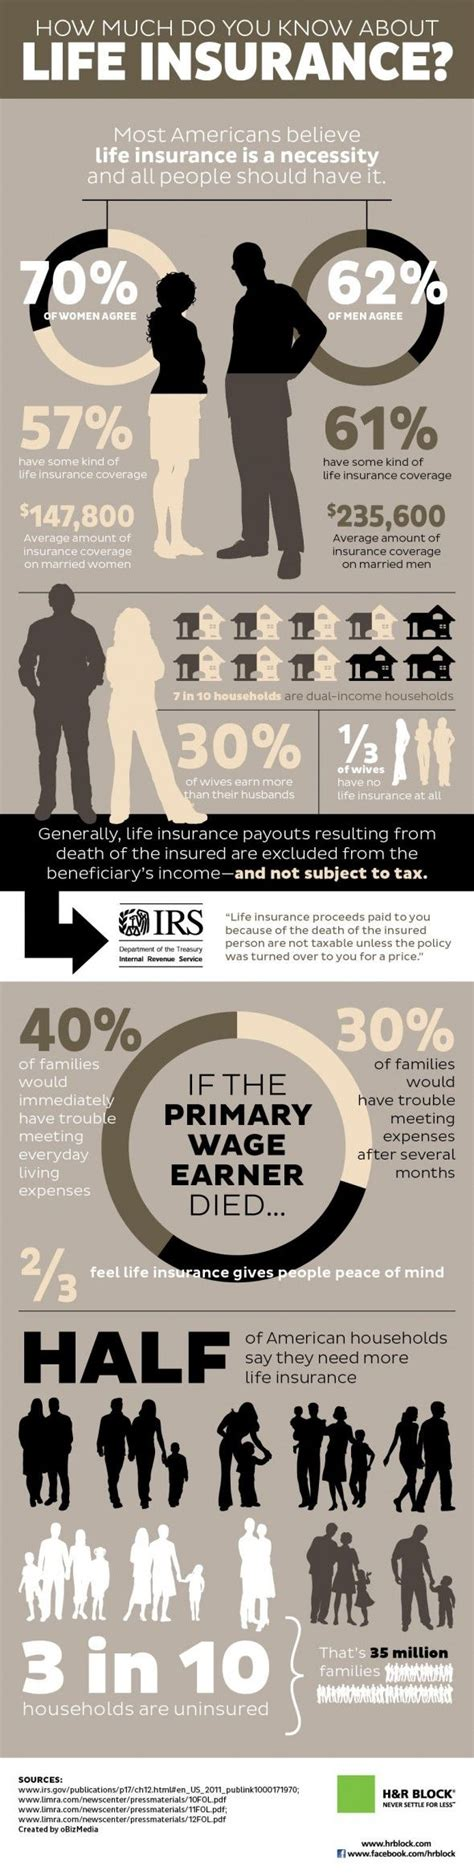 How much an insurance agent can make depends on a number of different factors, but making the right choices for your specific situation could lead to insurance agents must be licensed by the state that they practice in. Infographic: How Much Do You Know About Life Insurance?   National life insurance, Life ...